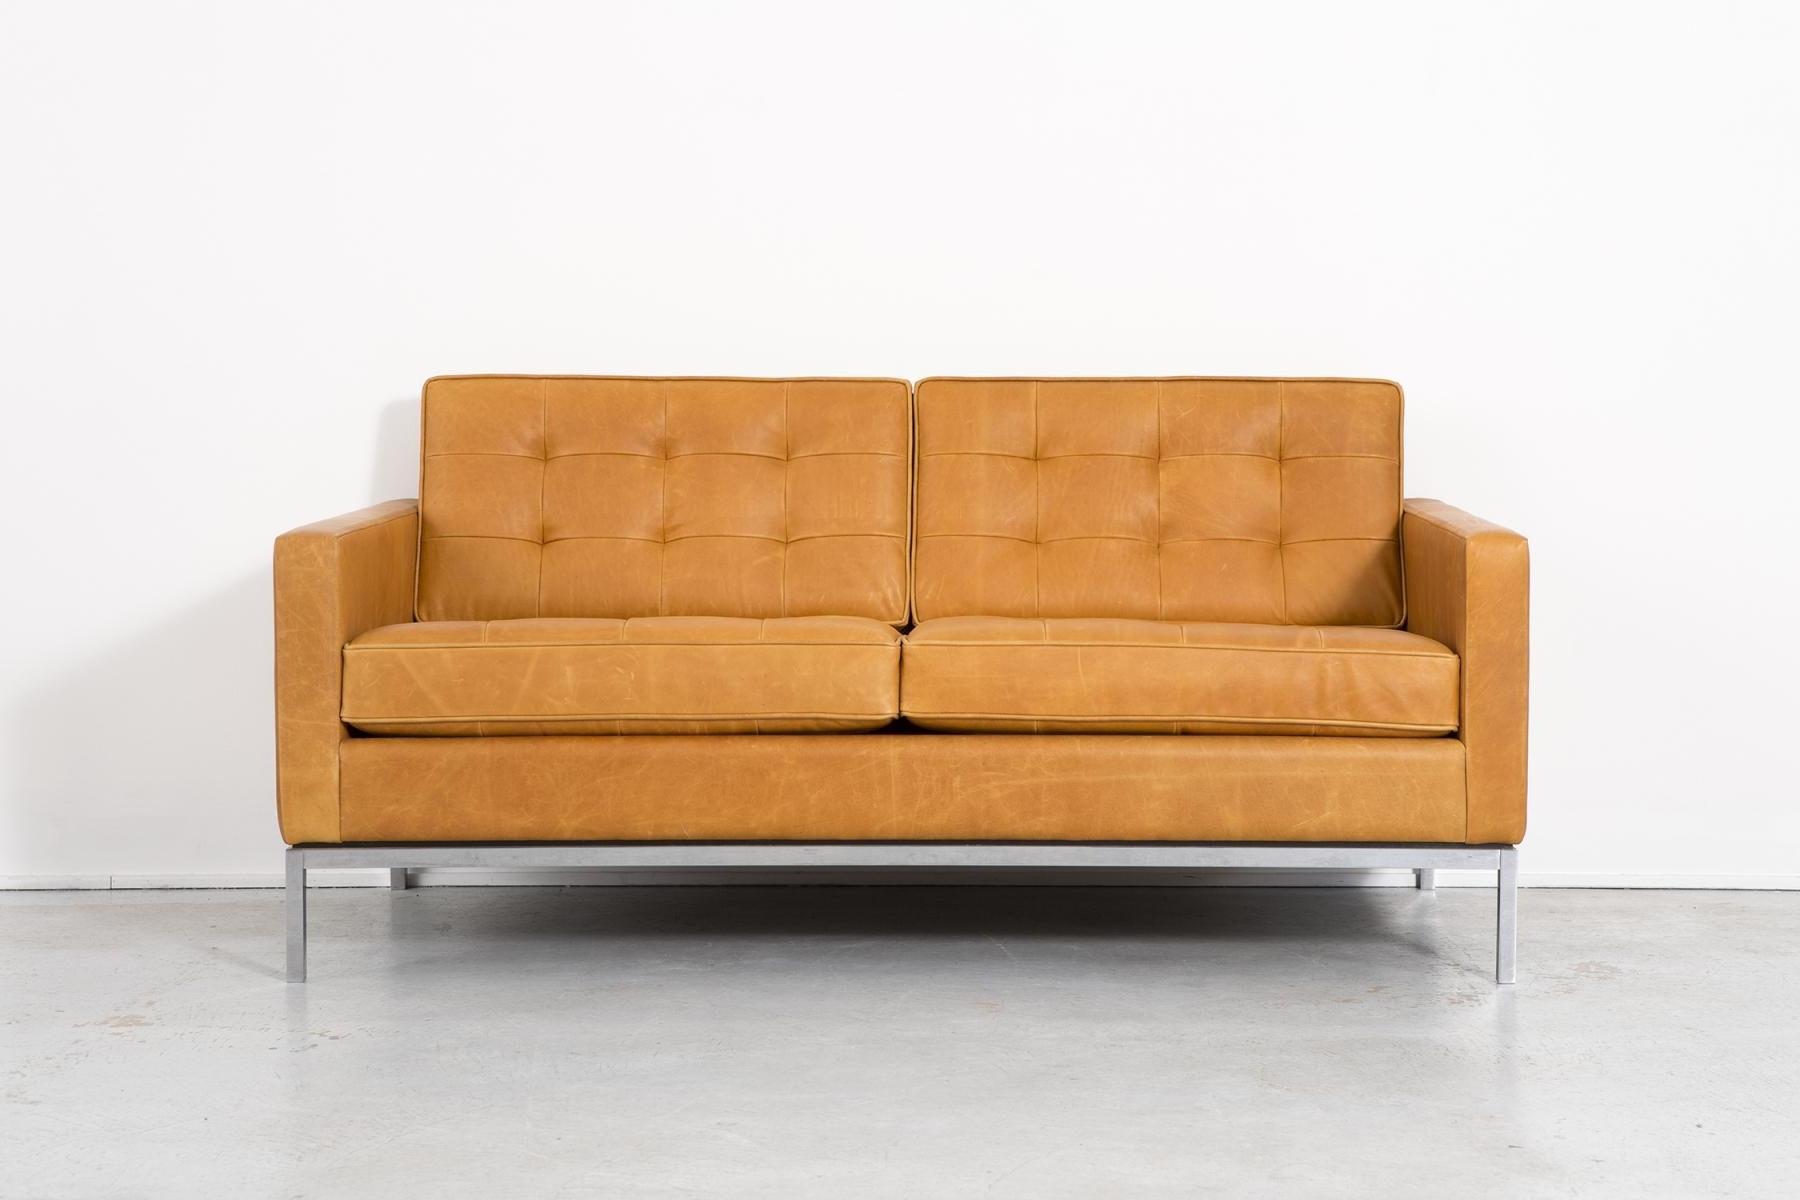 2017 Leather Sofaflorence Knoll Bassett For Knoll, 1970S For Sale Throughout Florence Sofas (View 14 of 15)